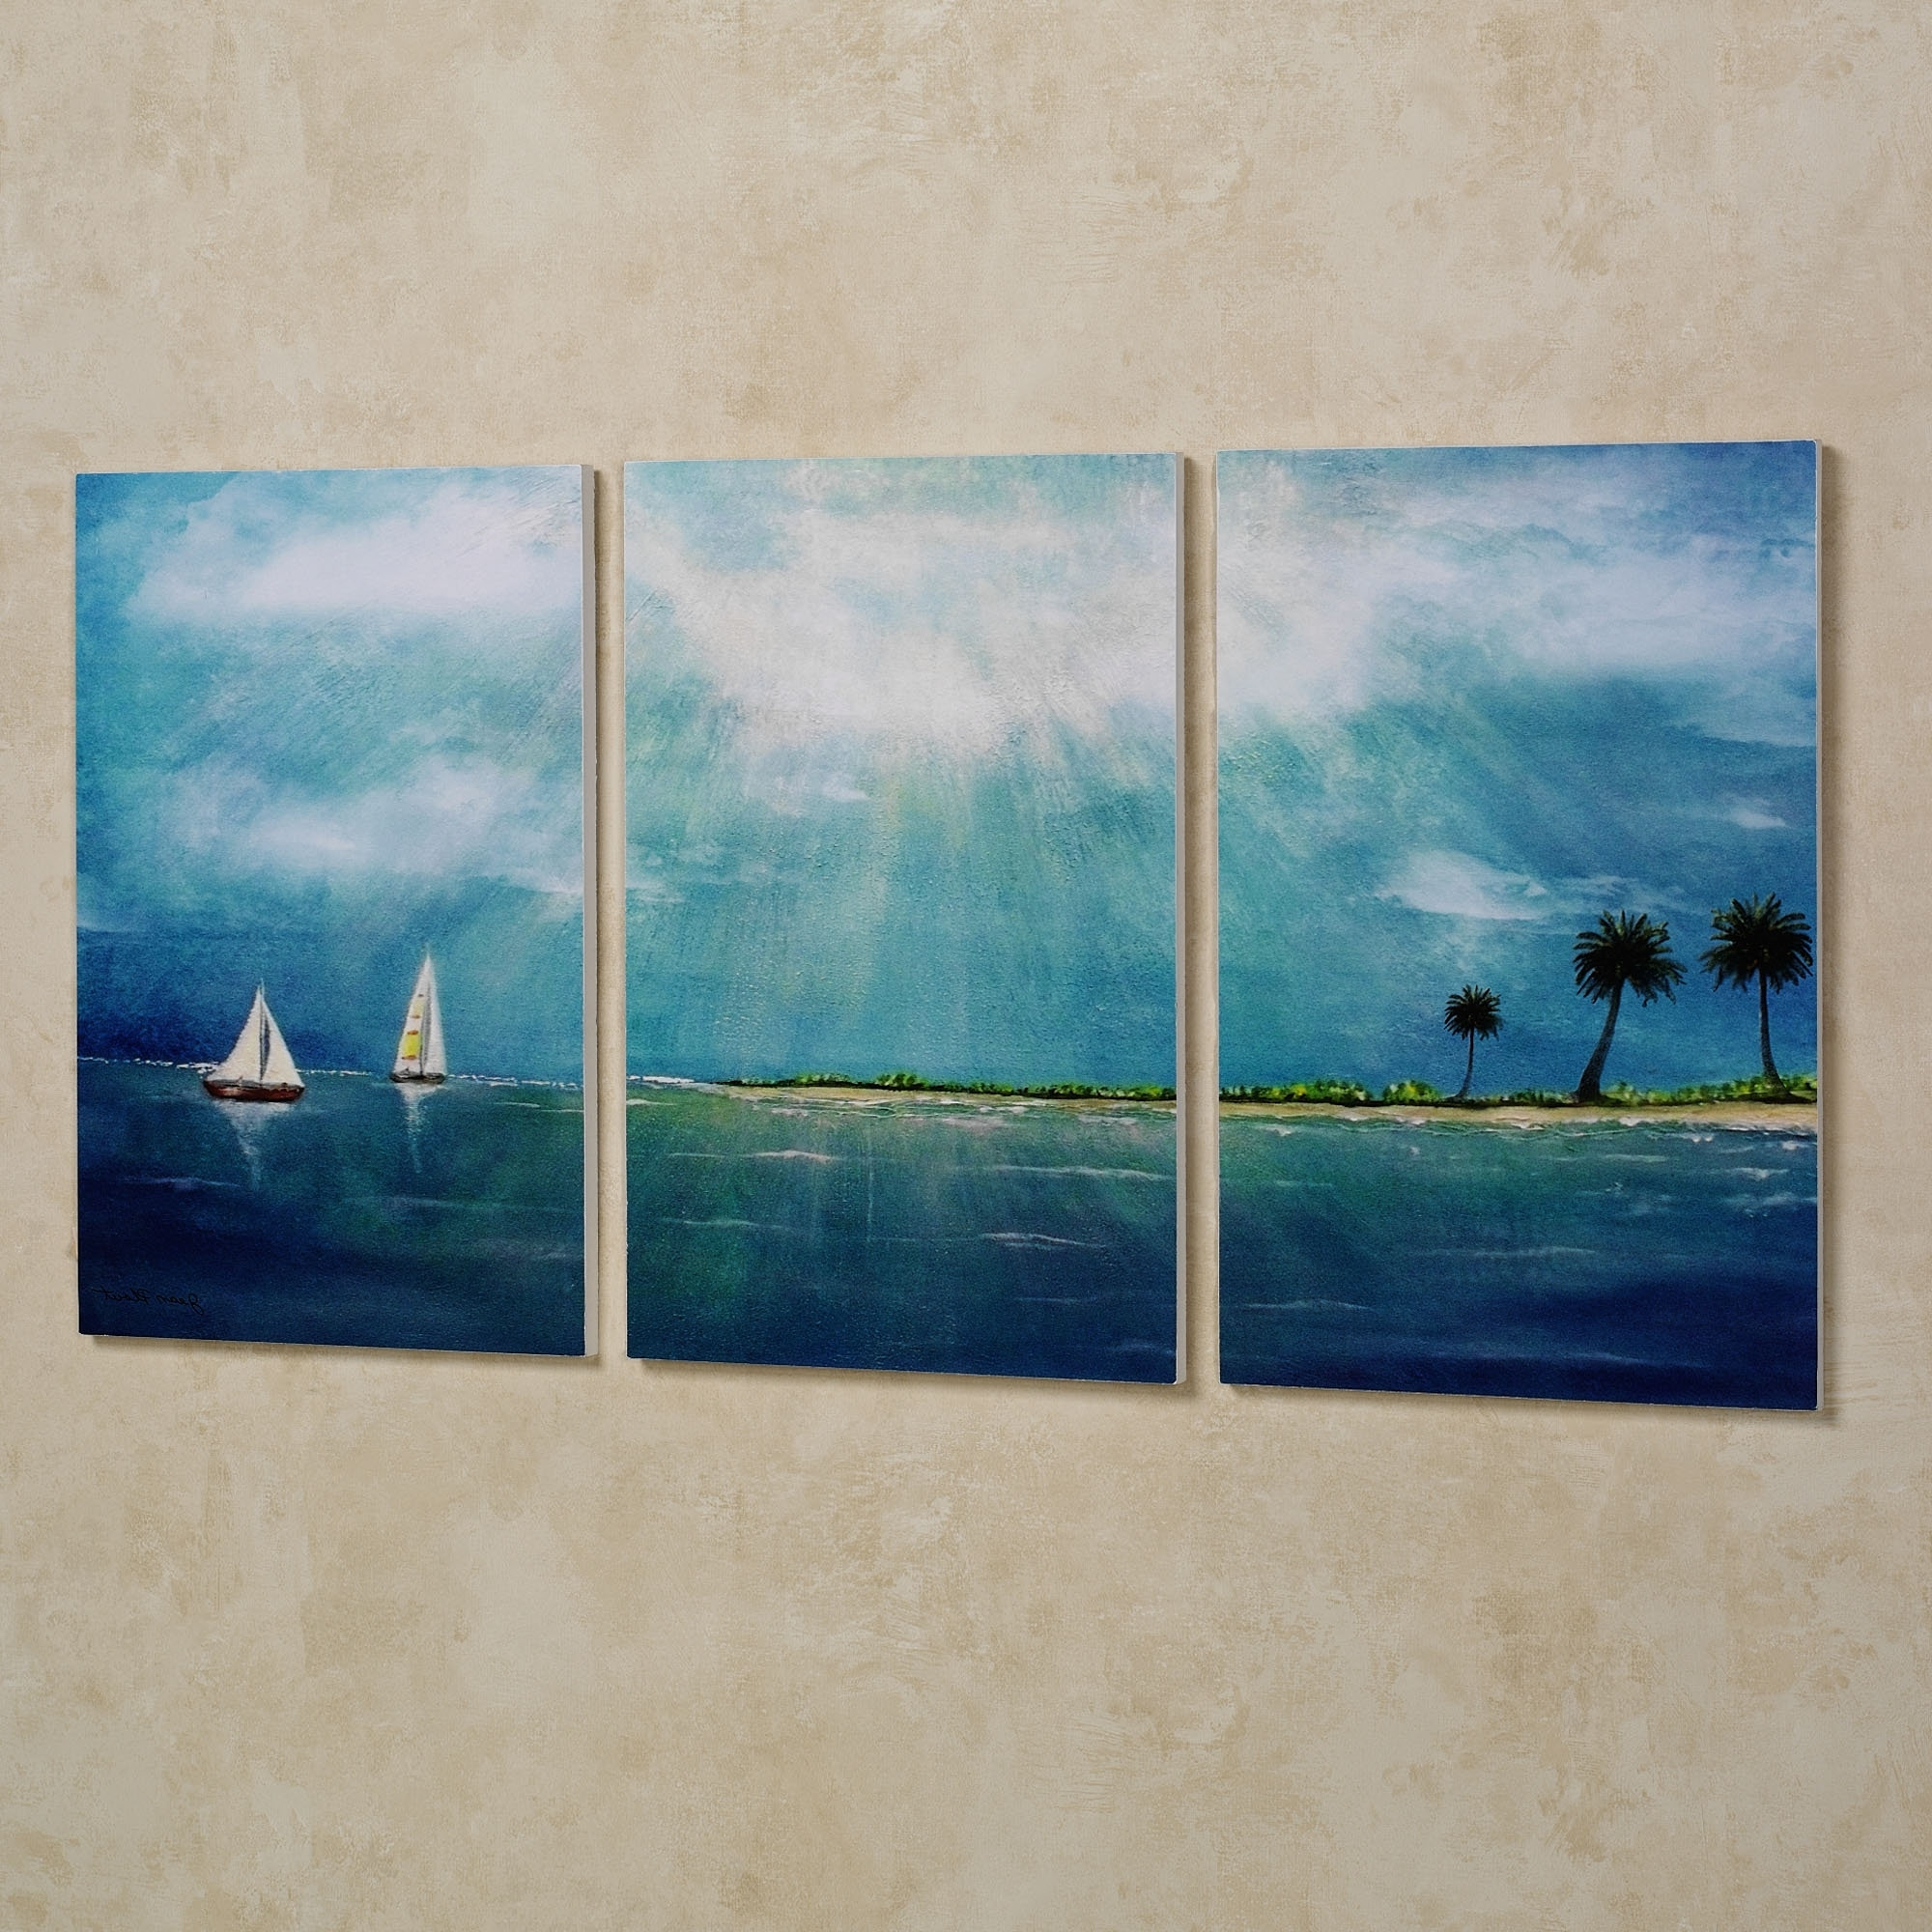 Preferred Wall Art Designs: Multi Panel Wall Art Multi Panel Sensual Wall Regarding Sensual Wall Art (View 4 of 15)